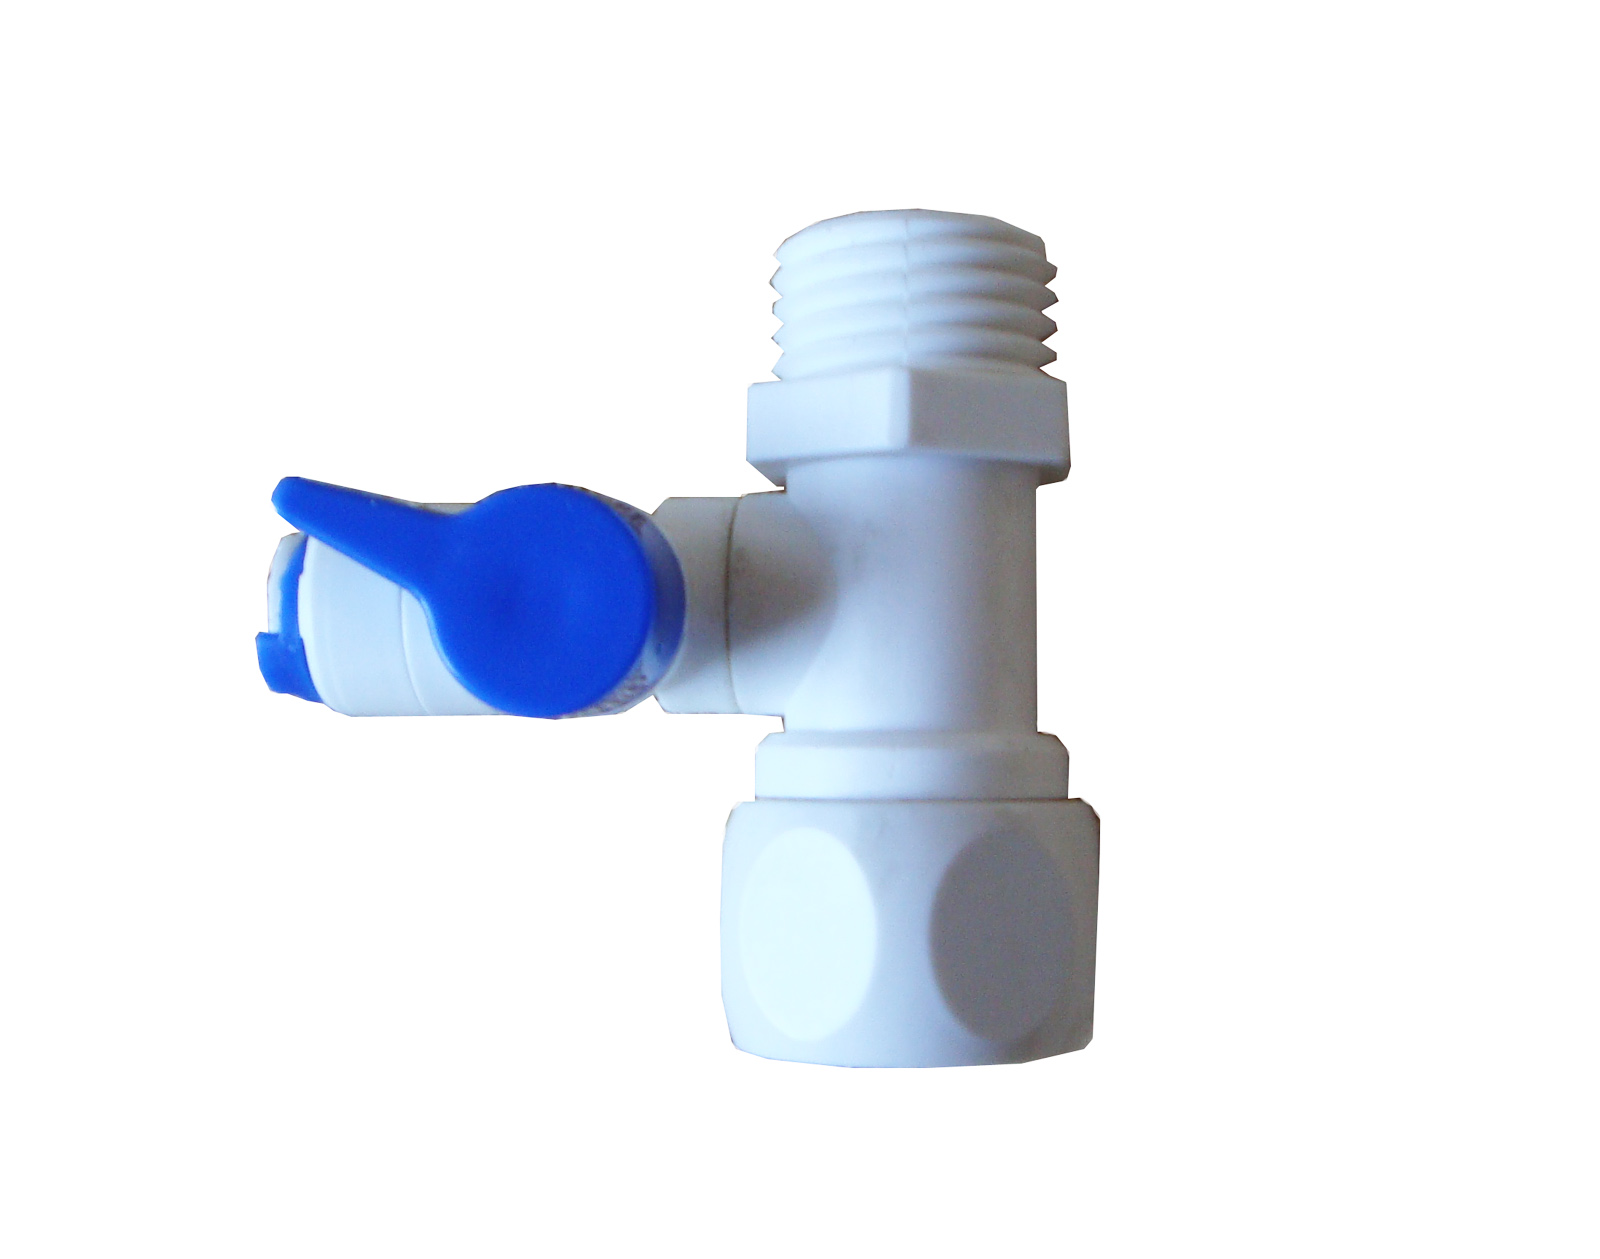 "Reverse Osmosis 1/2 x 1/2 x 1/4"" water feeding supply with valve"